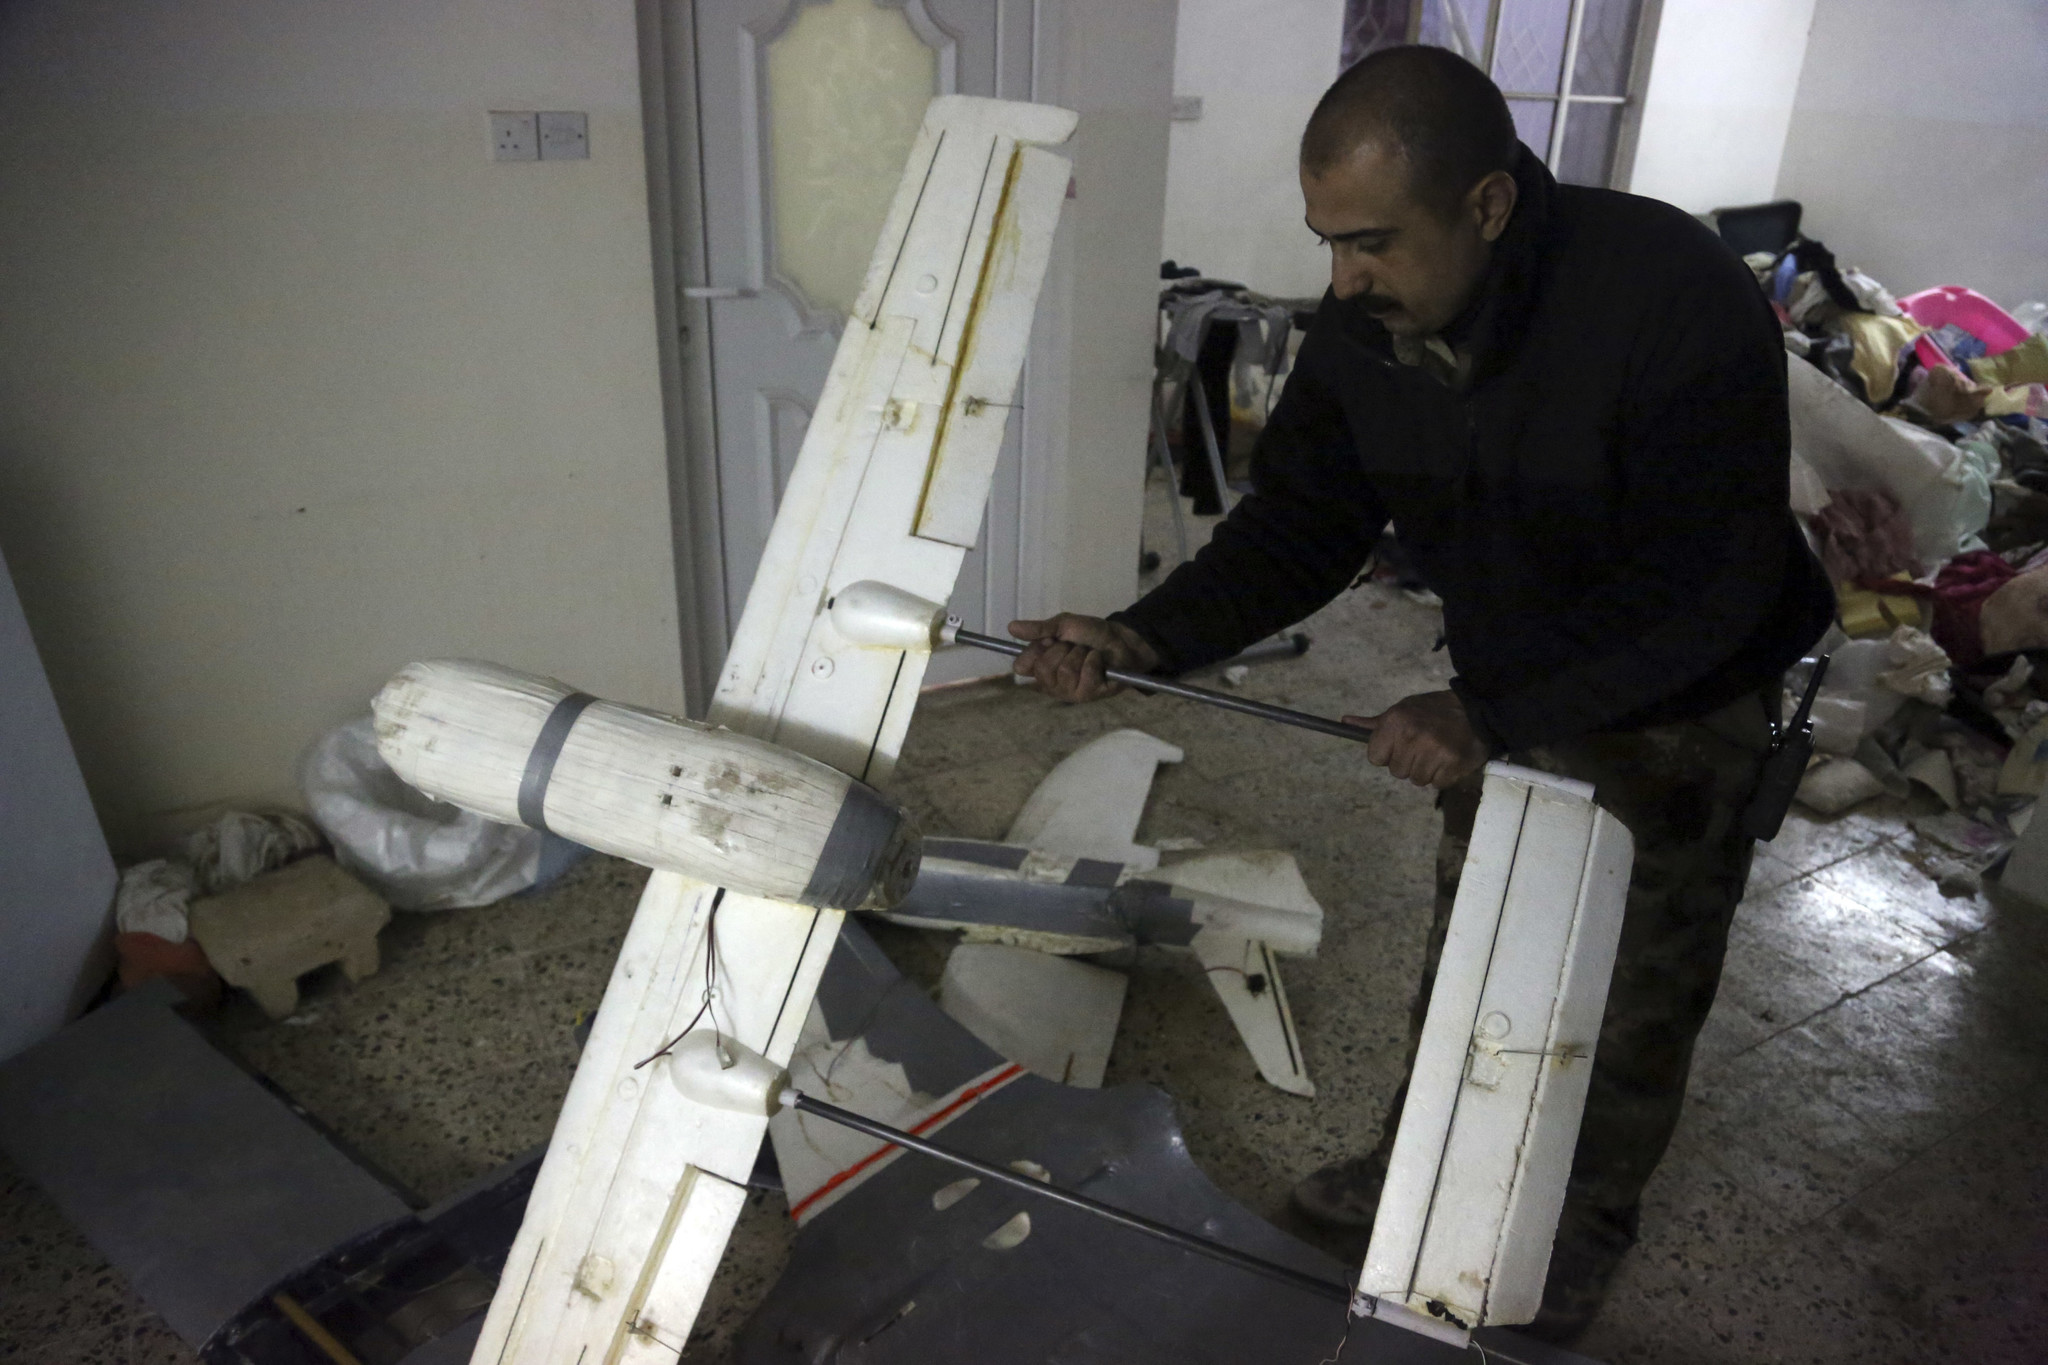 An Iraqi officer inspects drones belonging to Islamic State militants in Mosul, Iraq on Jan. 27, 2017. The Islamic State is hacking store-bought drone technology, using rigorous testing and tactics that mimic those used by U.S. unmanned aircraft to adapt to diminishing numbers of fighters and a battlefield that is increasingly difficult to navigate on the ground. (Khalid Mohammed/AP)